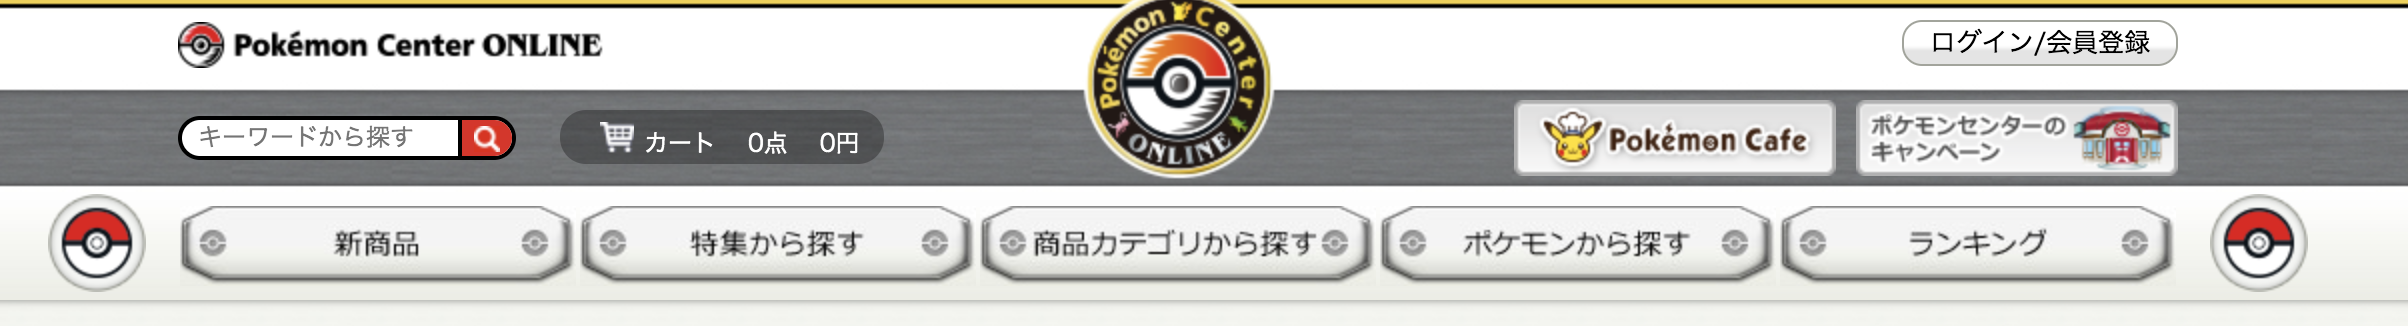 Pokemon Center Online Japan search bar